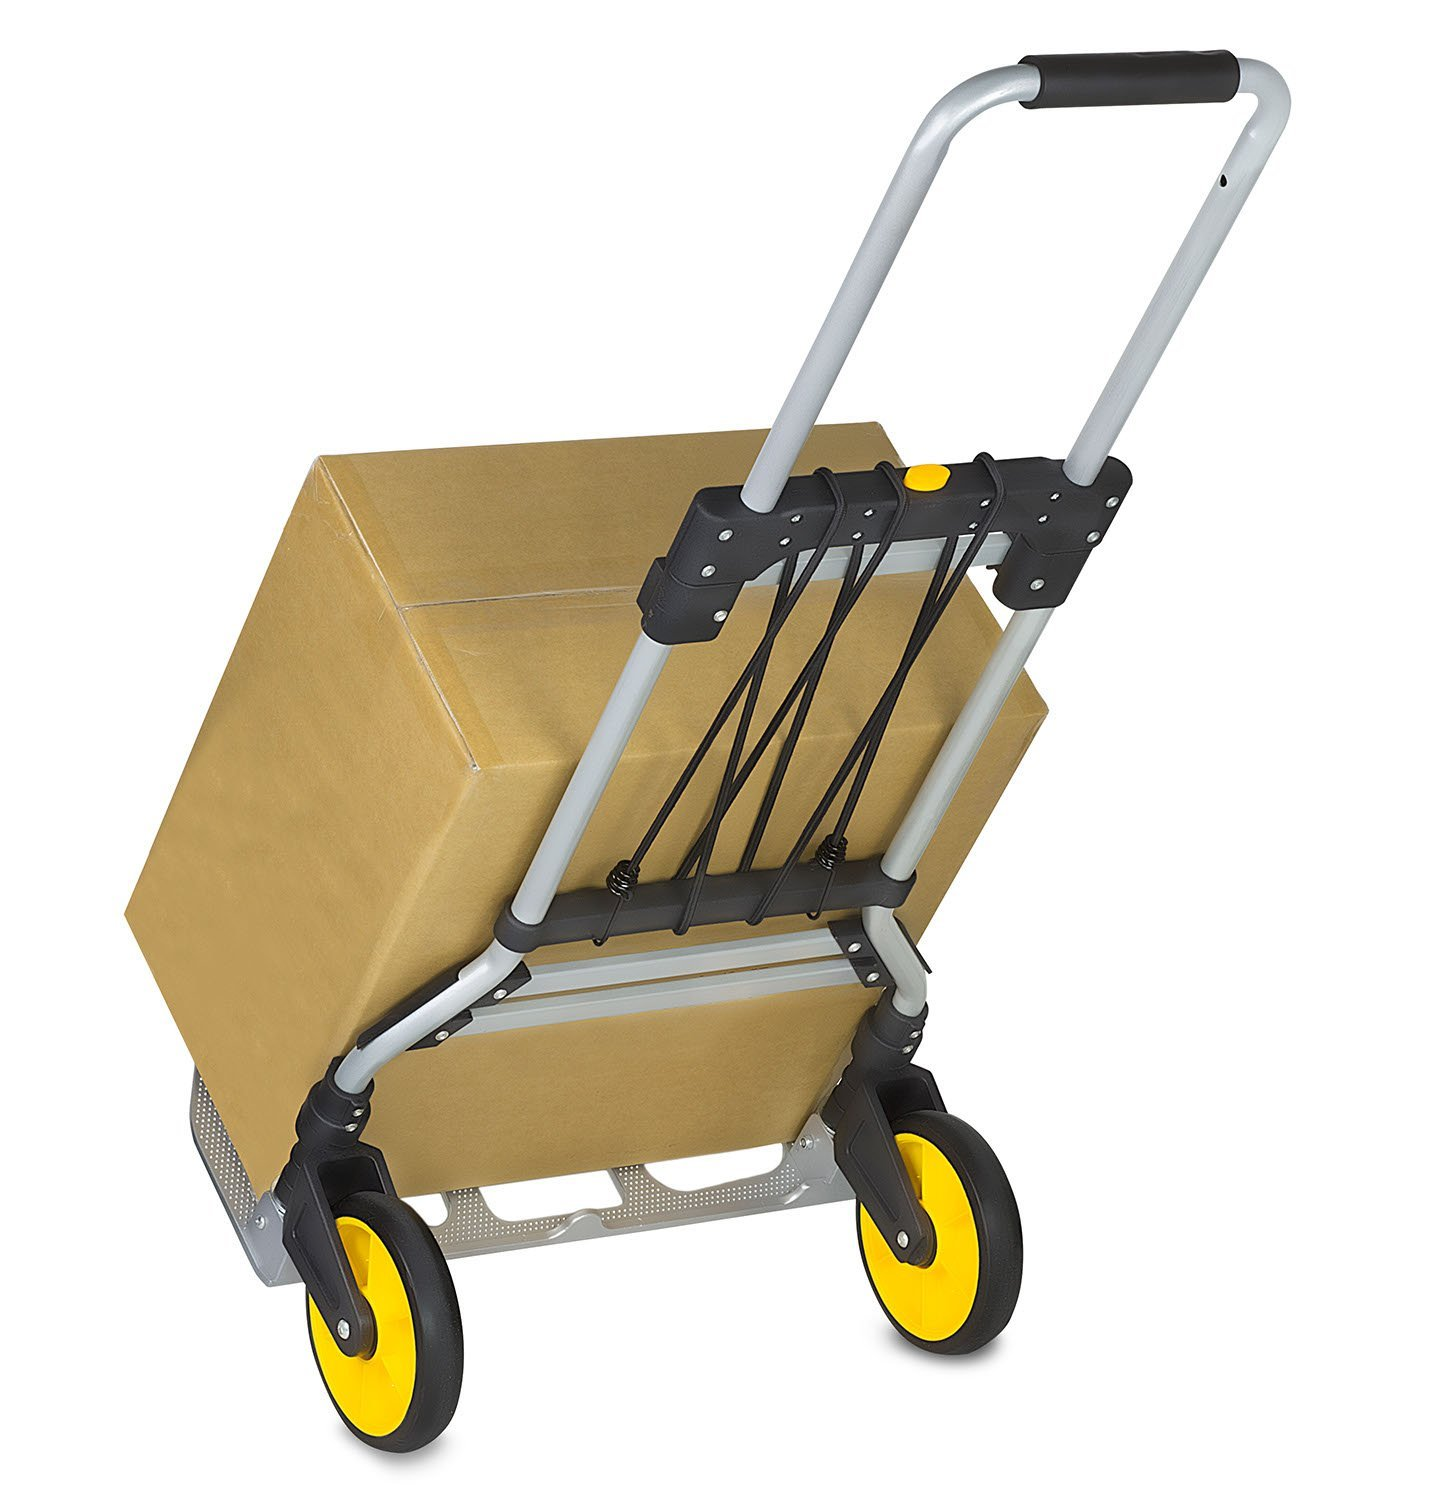 Mount-It! Heavy-Duty Folding Hand Truck, Dolly, and Luggage Trolley Cart With Telescoping Handle 264 Lb. Capacity (MI-902)